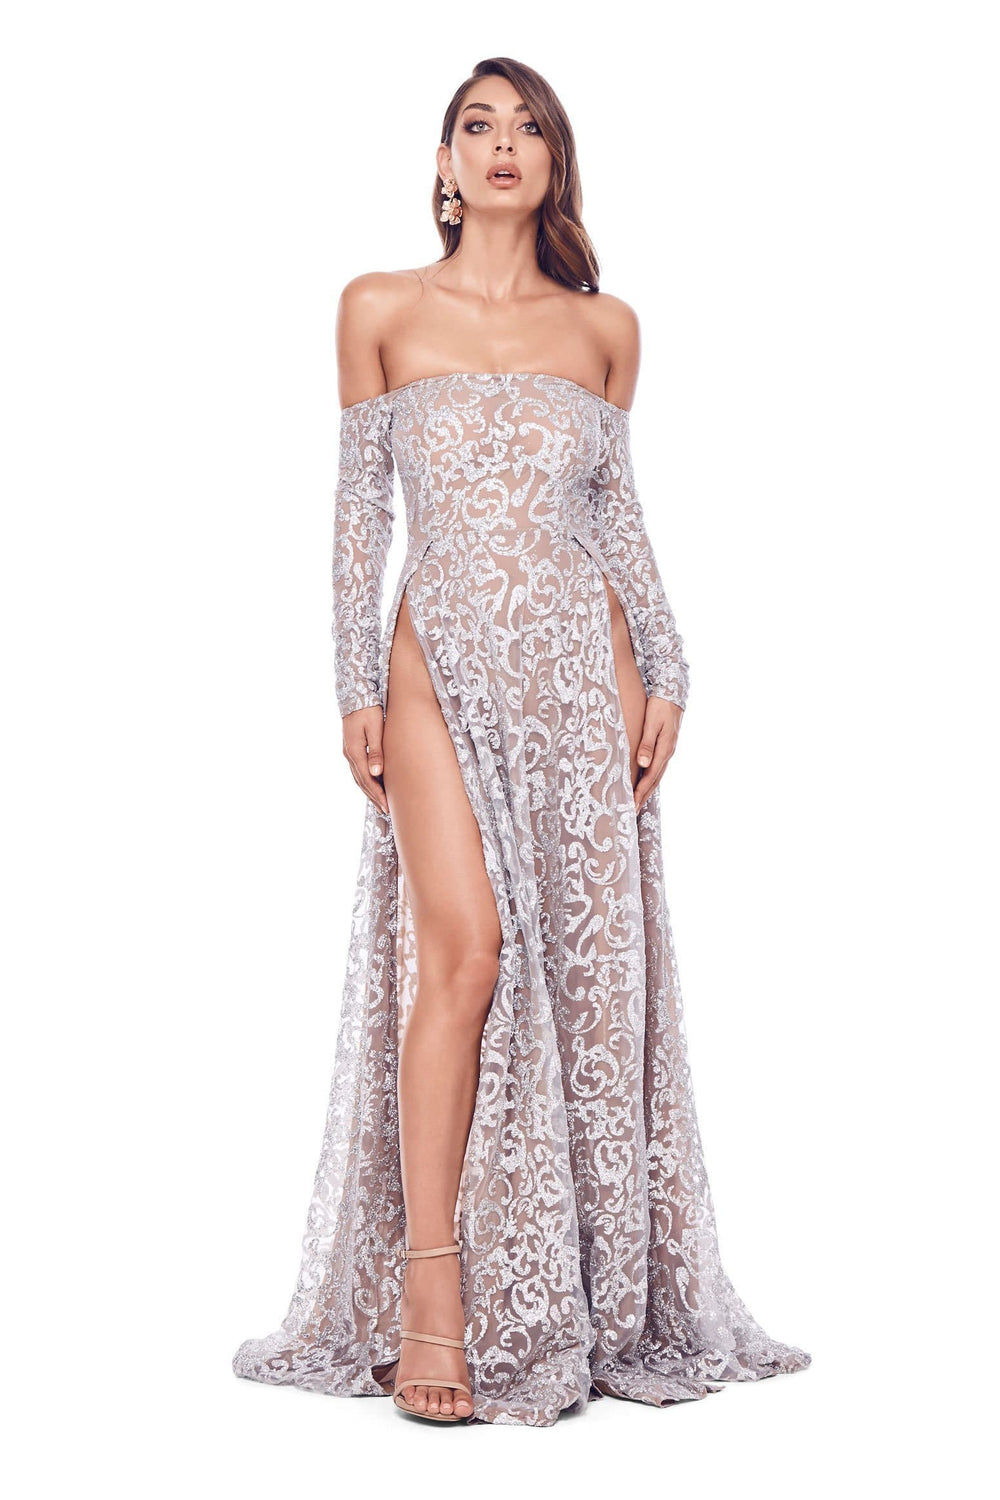 Flame - Silver Glitter Gown with Off-Shoulder Long Sleeves   Side ... 06fcbae24